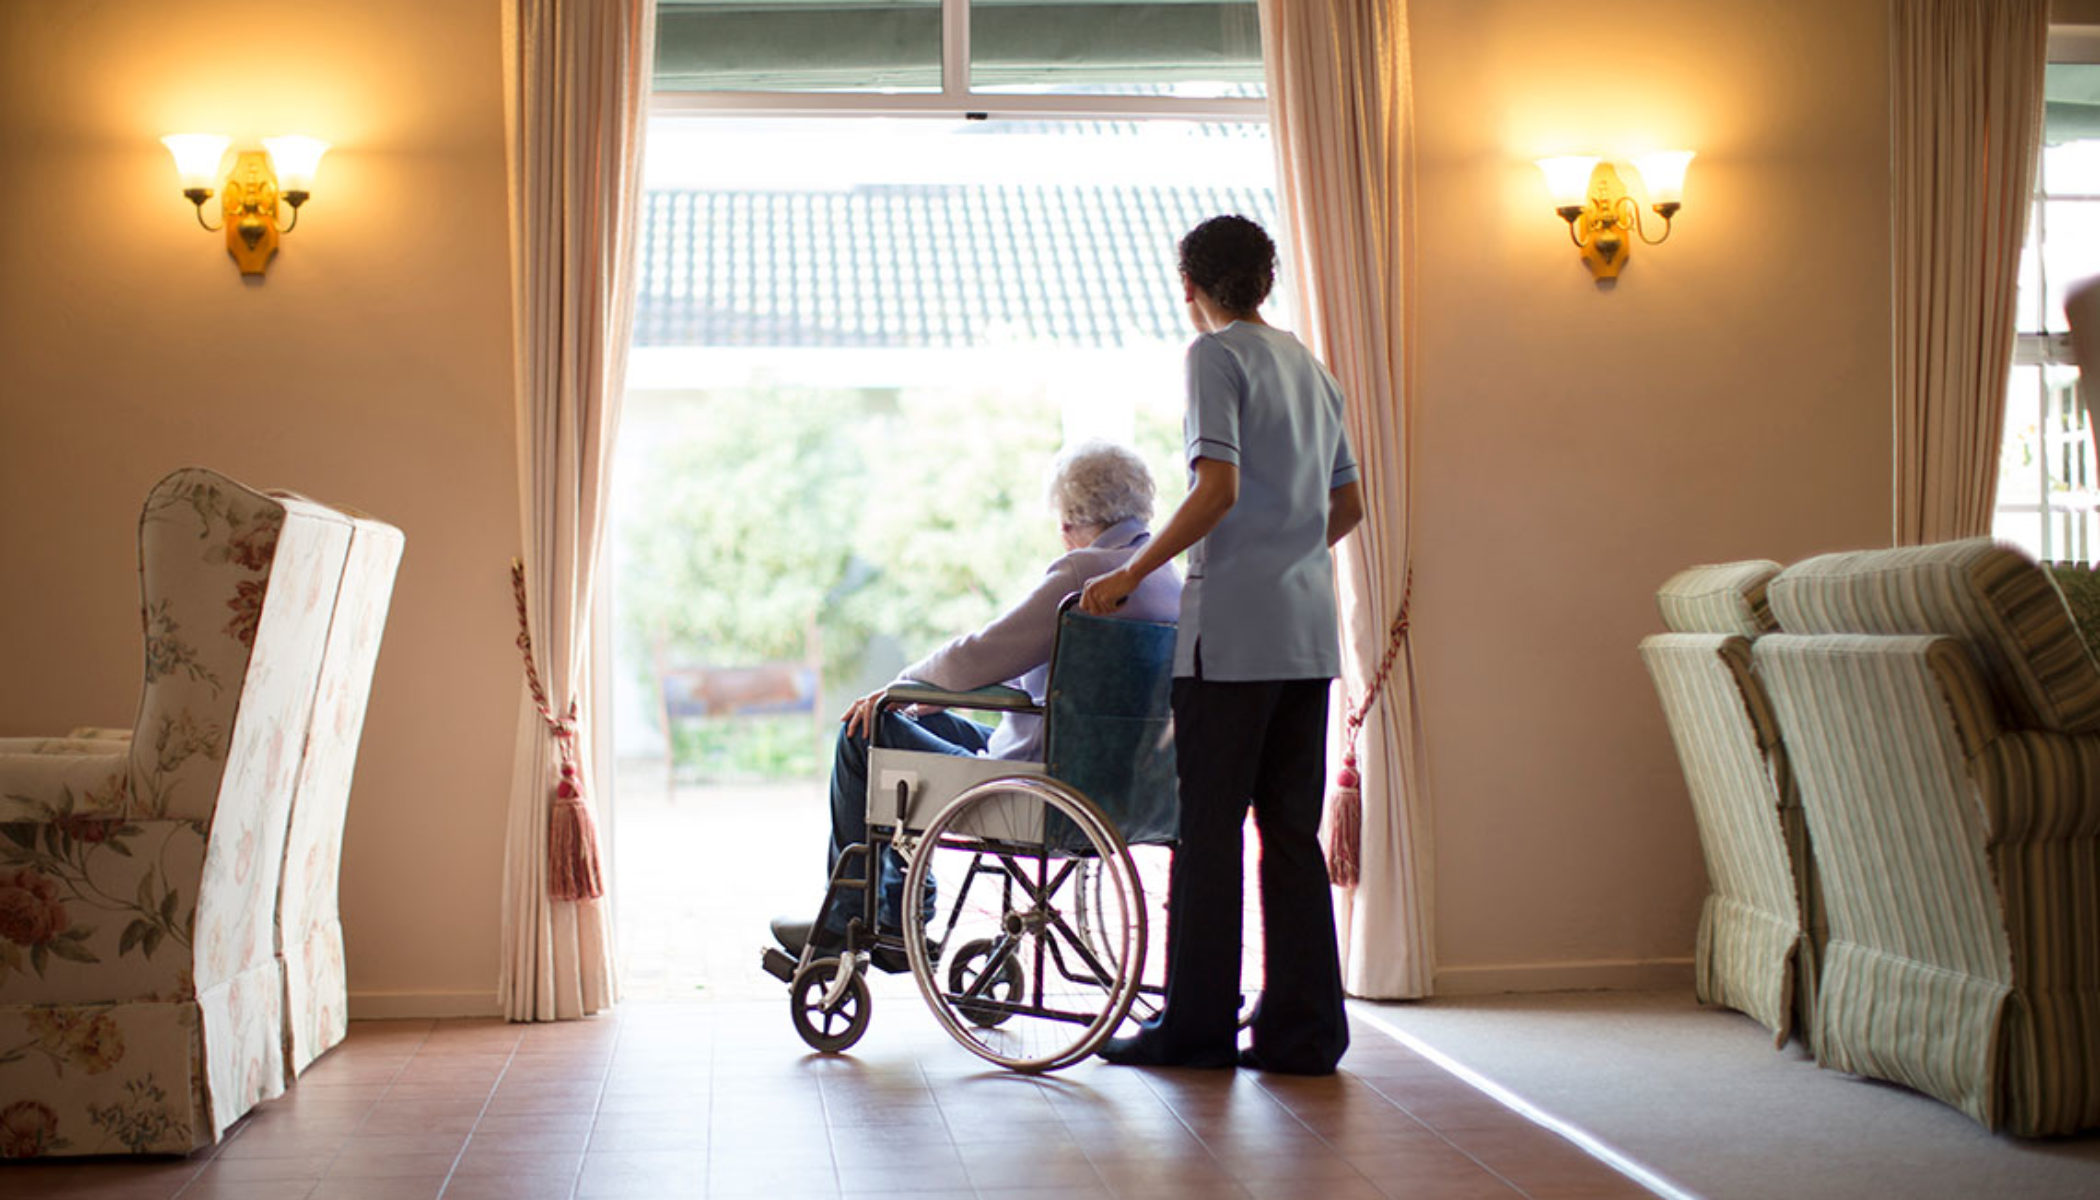 All About Home Style Aged Care - Advantages, Services, Things to consider